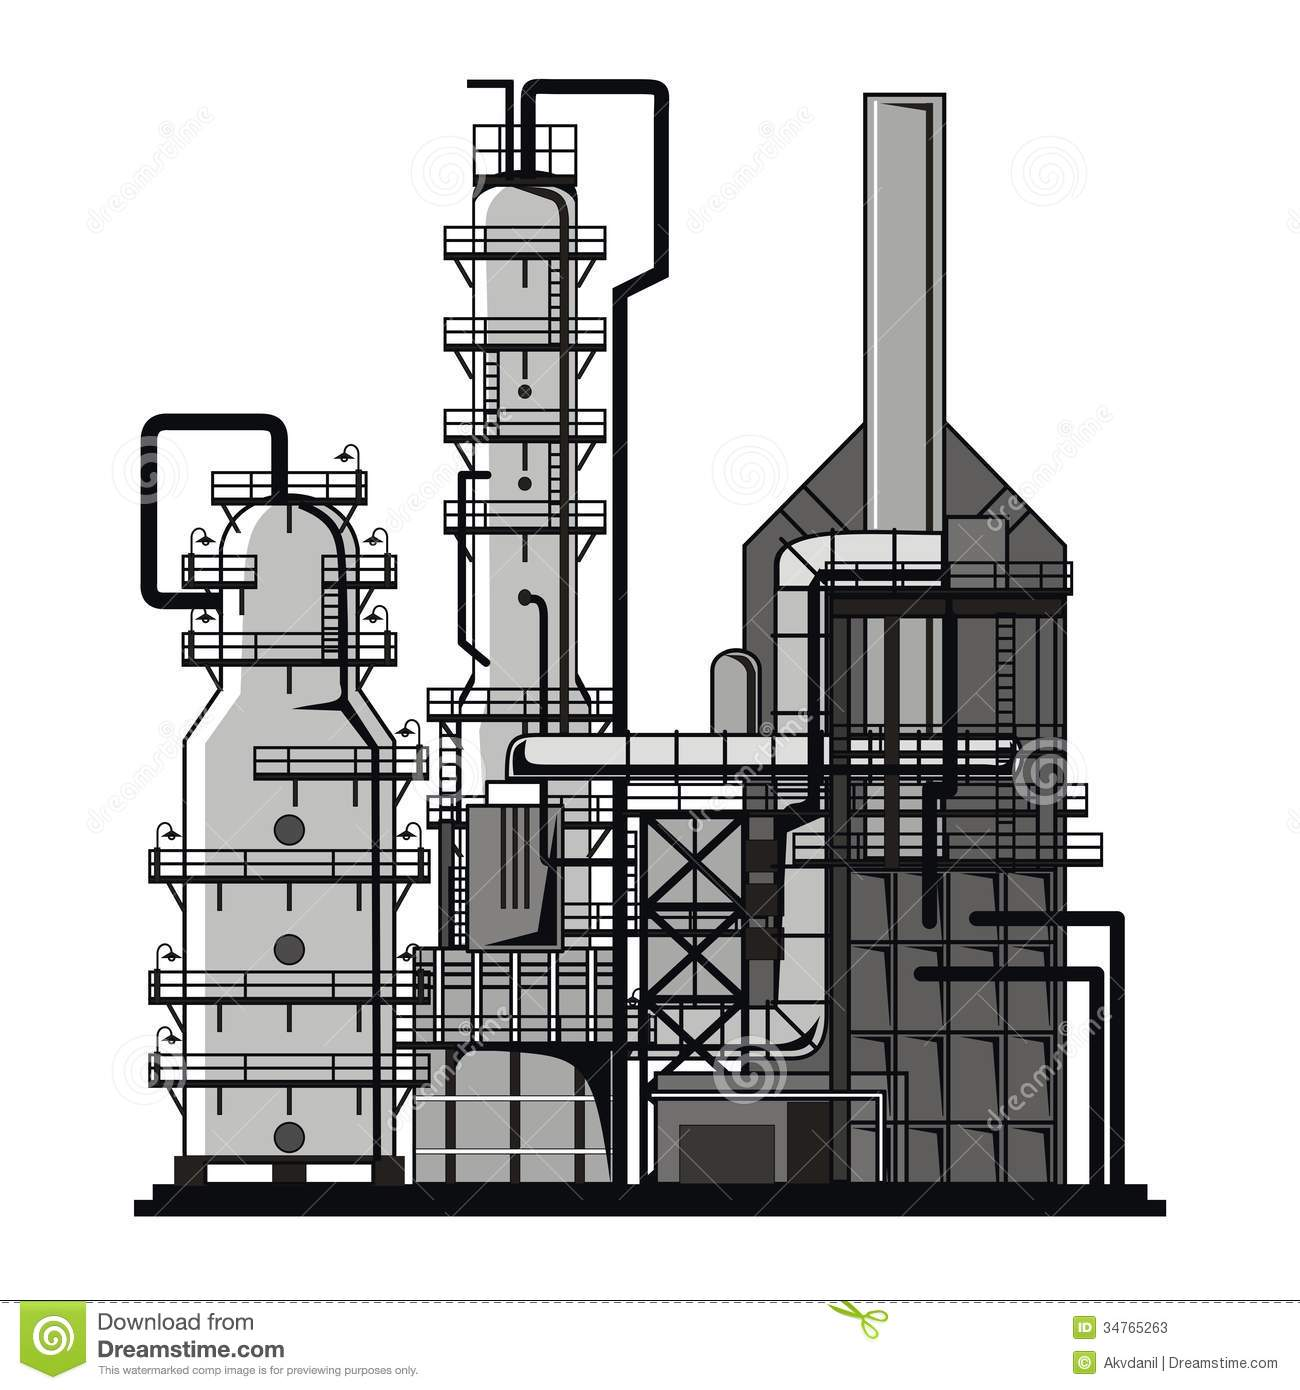 Oil refinery clipart - Clipground